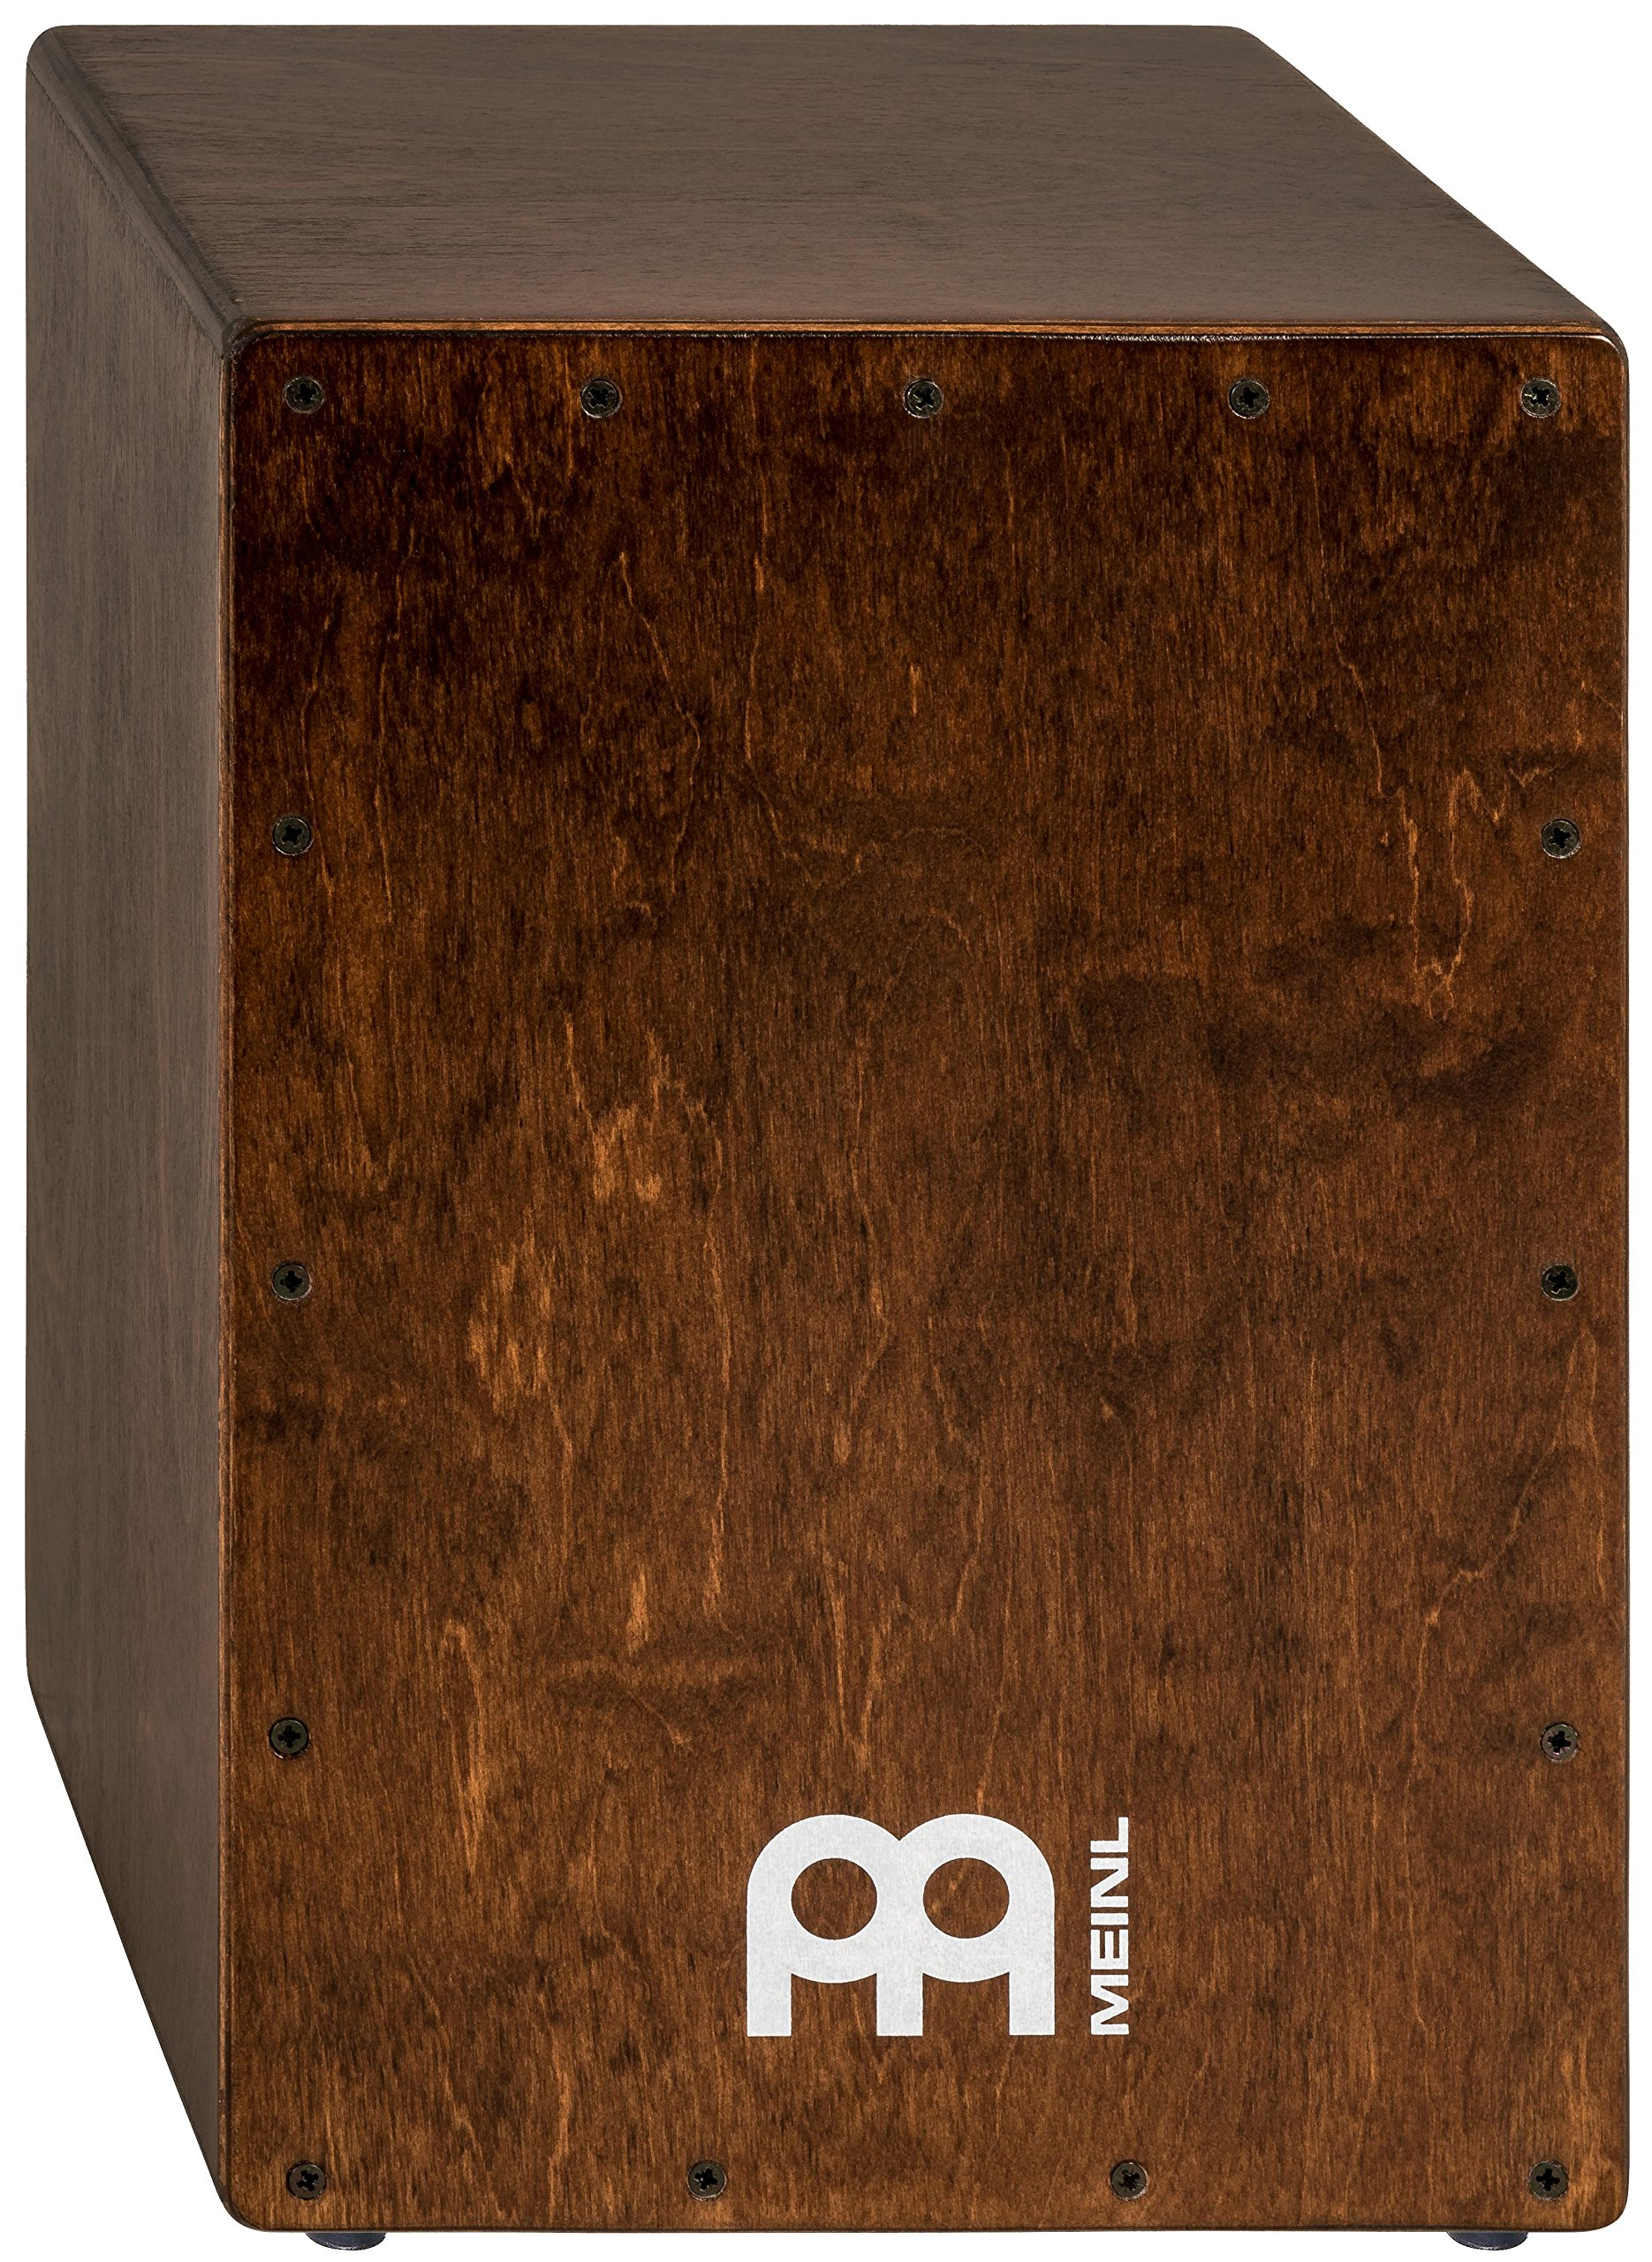 Meinl Percussion Cajon Box Drum with Internal Snares - MADE IN EUROPE - Baltic Birch Wood Compact Size, 2-YEAR WARRANTY (JC50BR)